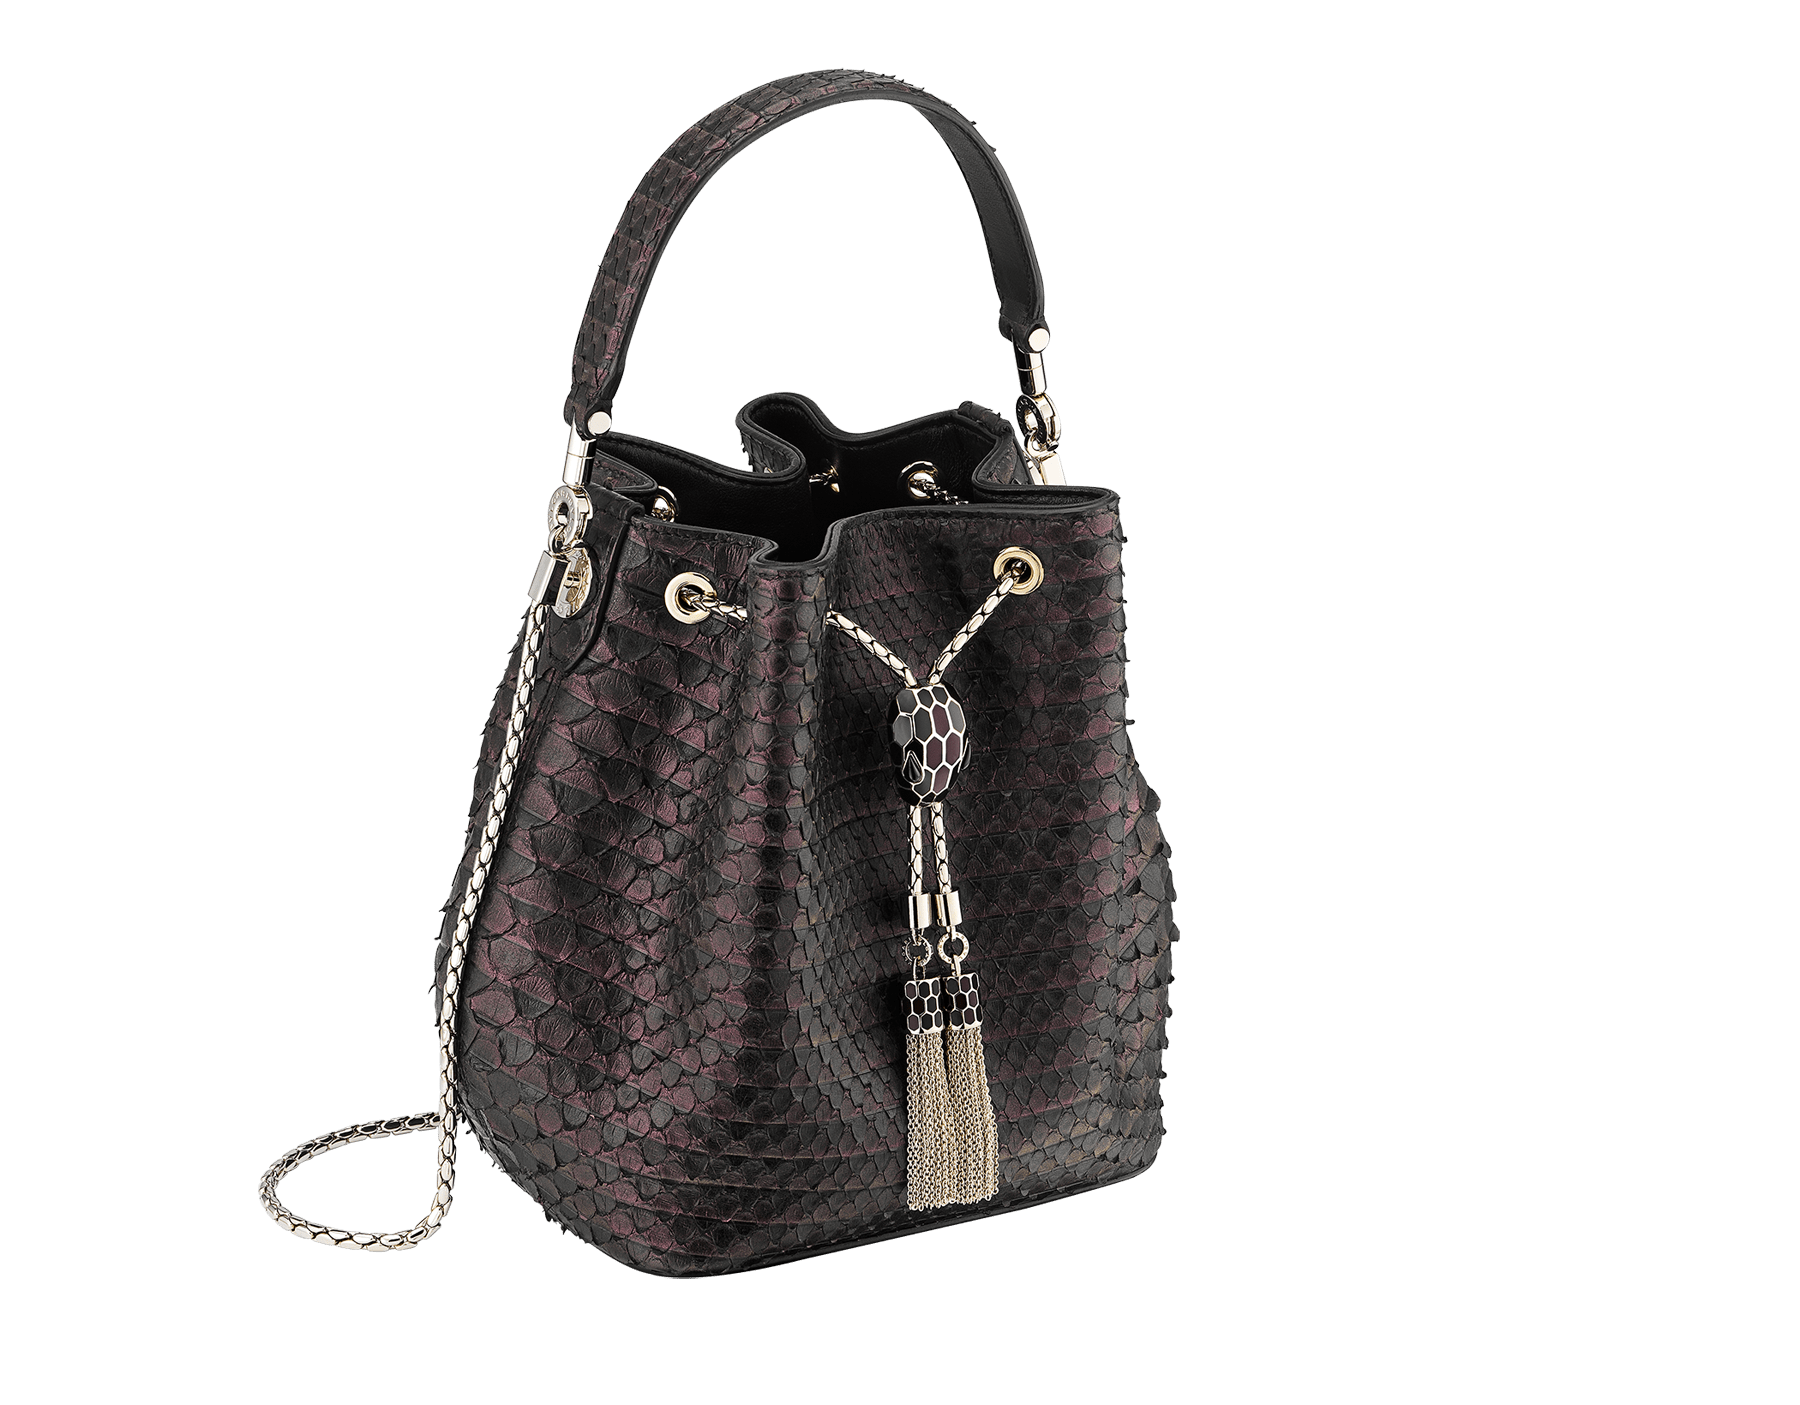 Bucket Serpenti Forever in plum amethyst Plissé python skin and black nappa internal lining. Hardware in light gold plated brass and snakehead closure in black and plum amethyst enamel, with eyes in black onyx. 934-PP image 2